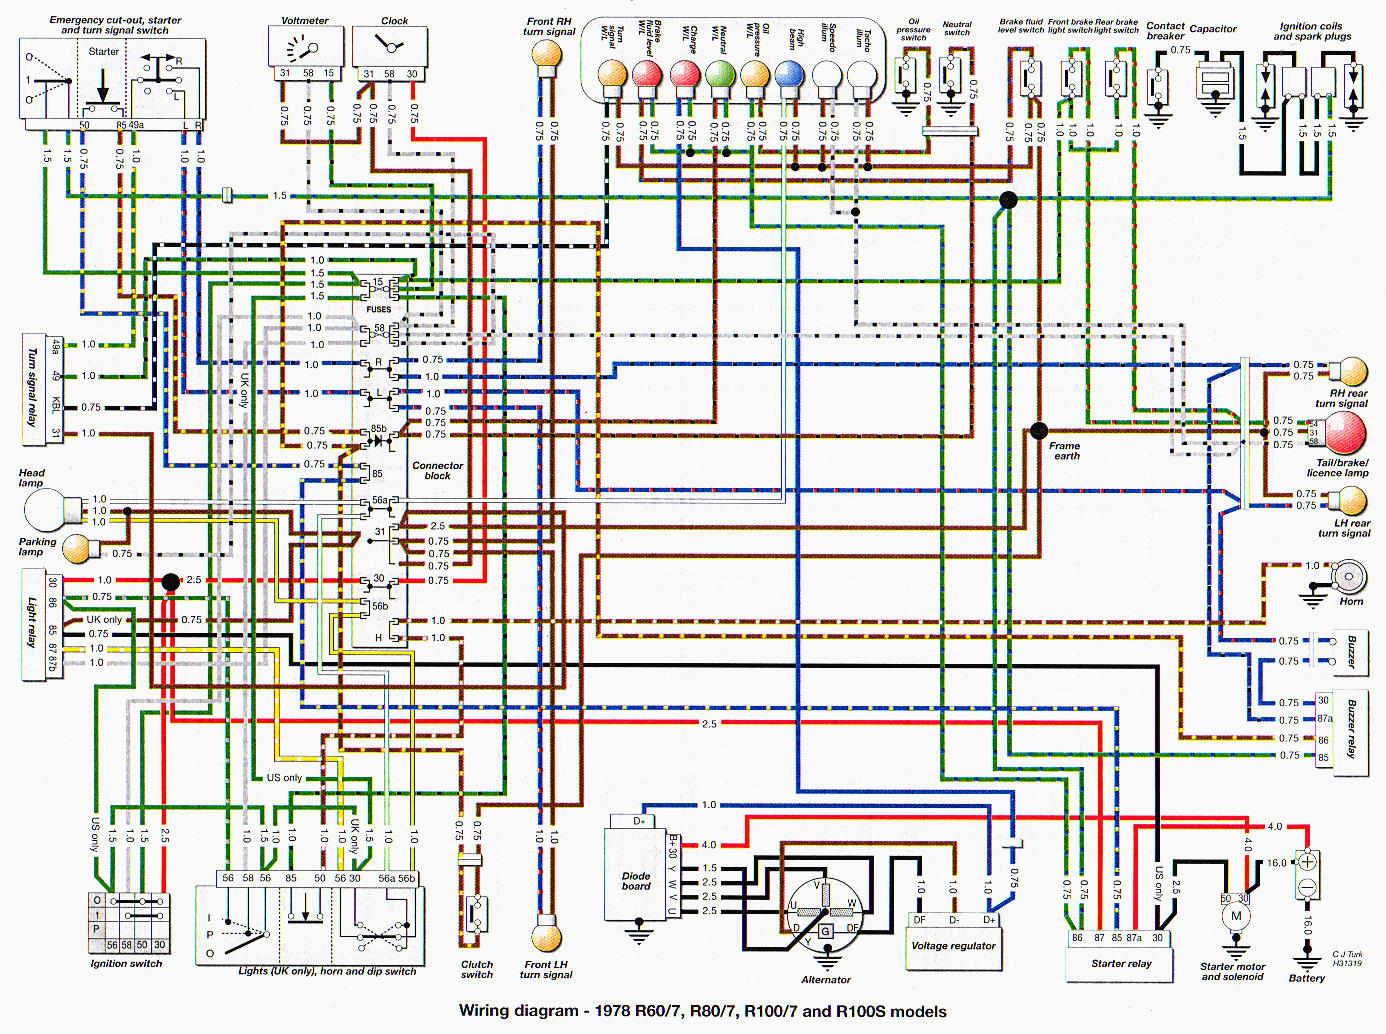 Awesome Bmw K1100 Wiring Diagram 12 12 Tramitesyconsultas Co Wiring Digital Resources Funapmognl